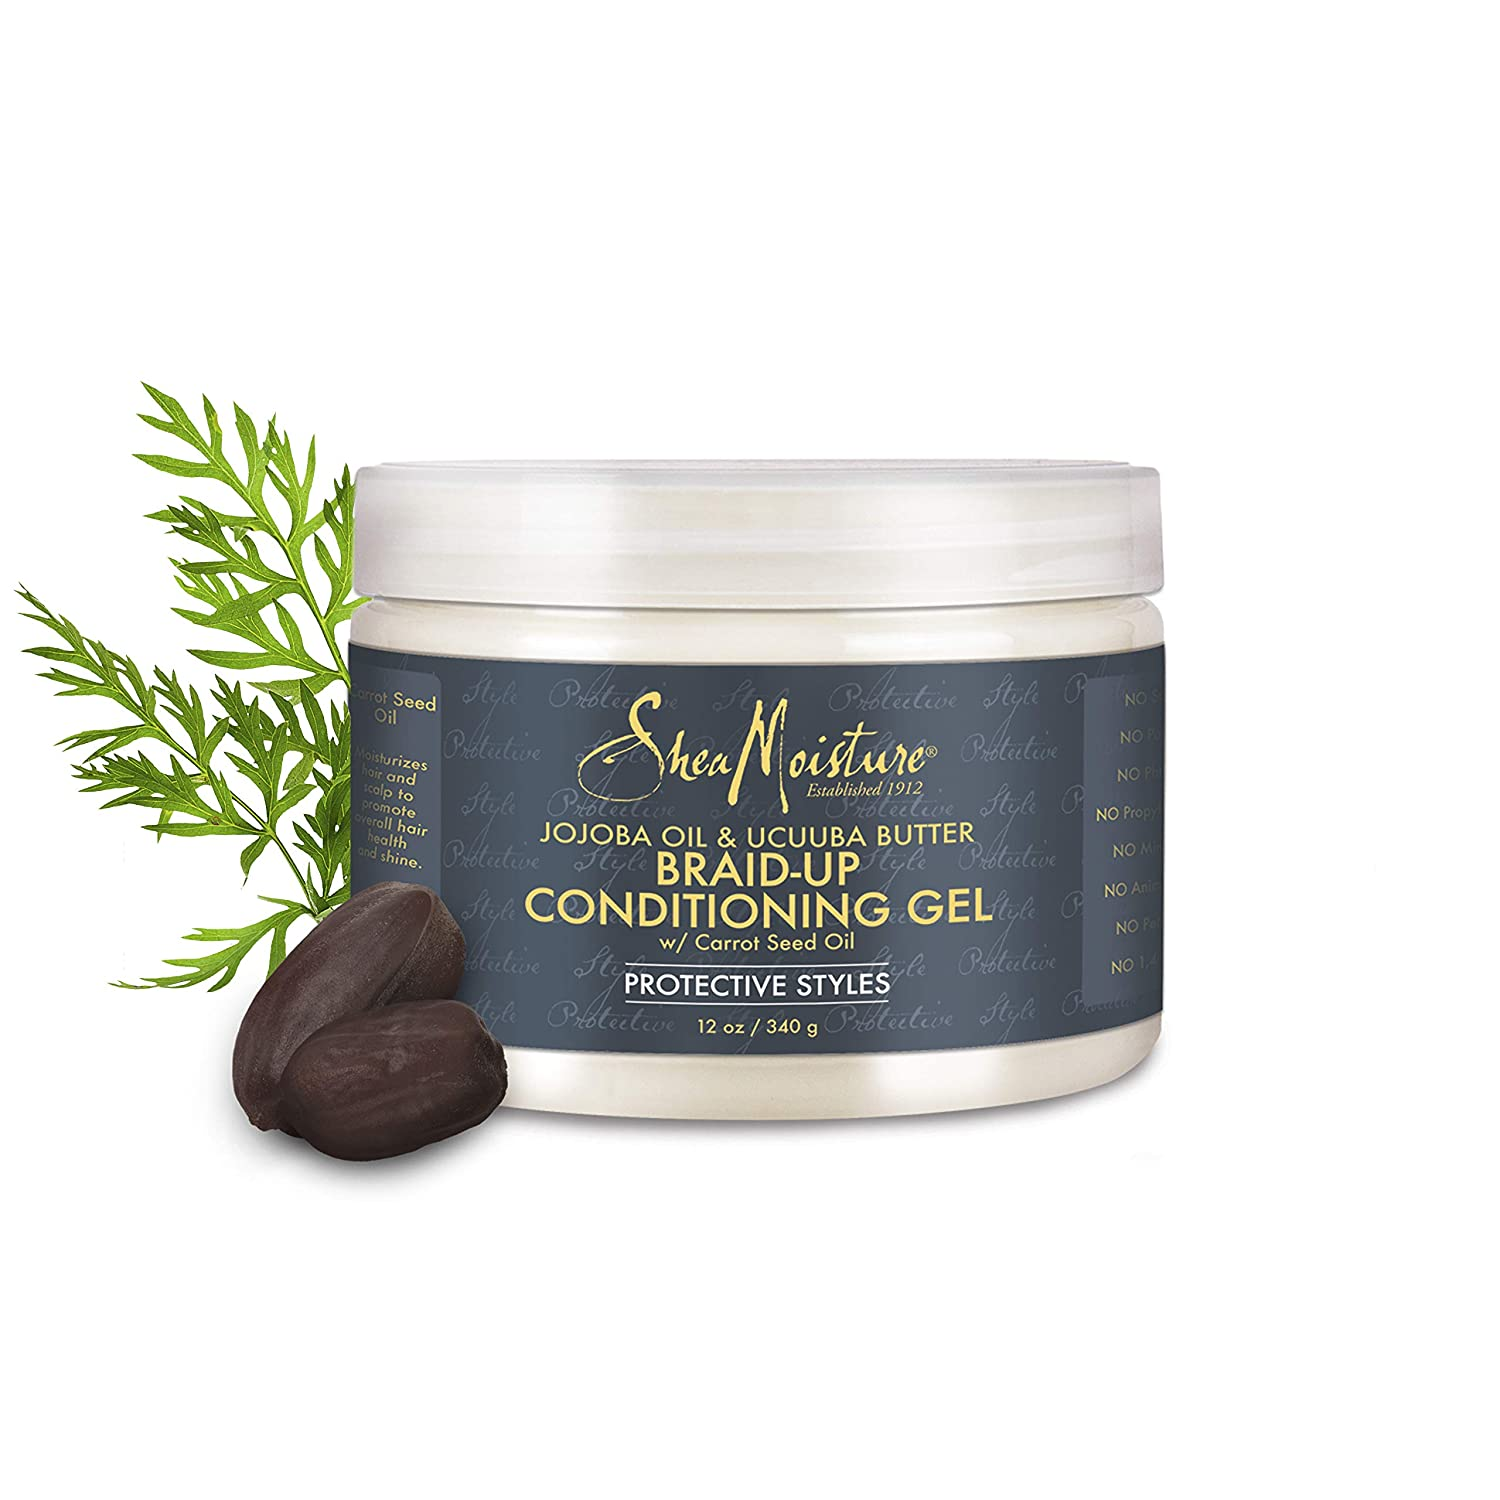 Shea Moisture Jojoba Oil & Ucuuba Butter Braid Condition Gel With Carrot Seed Oil, 12 Pound